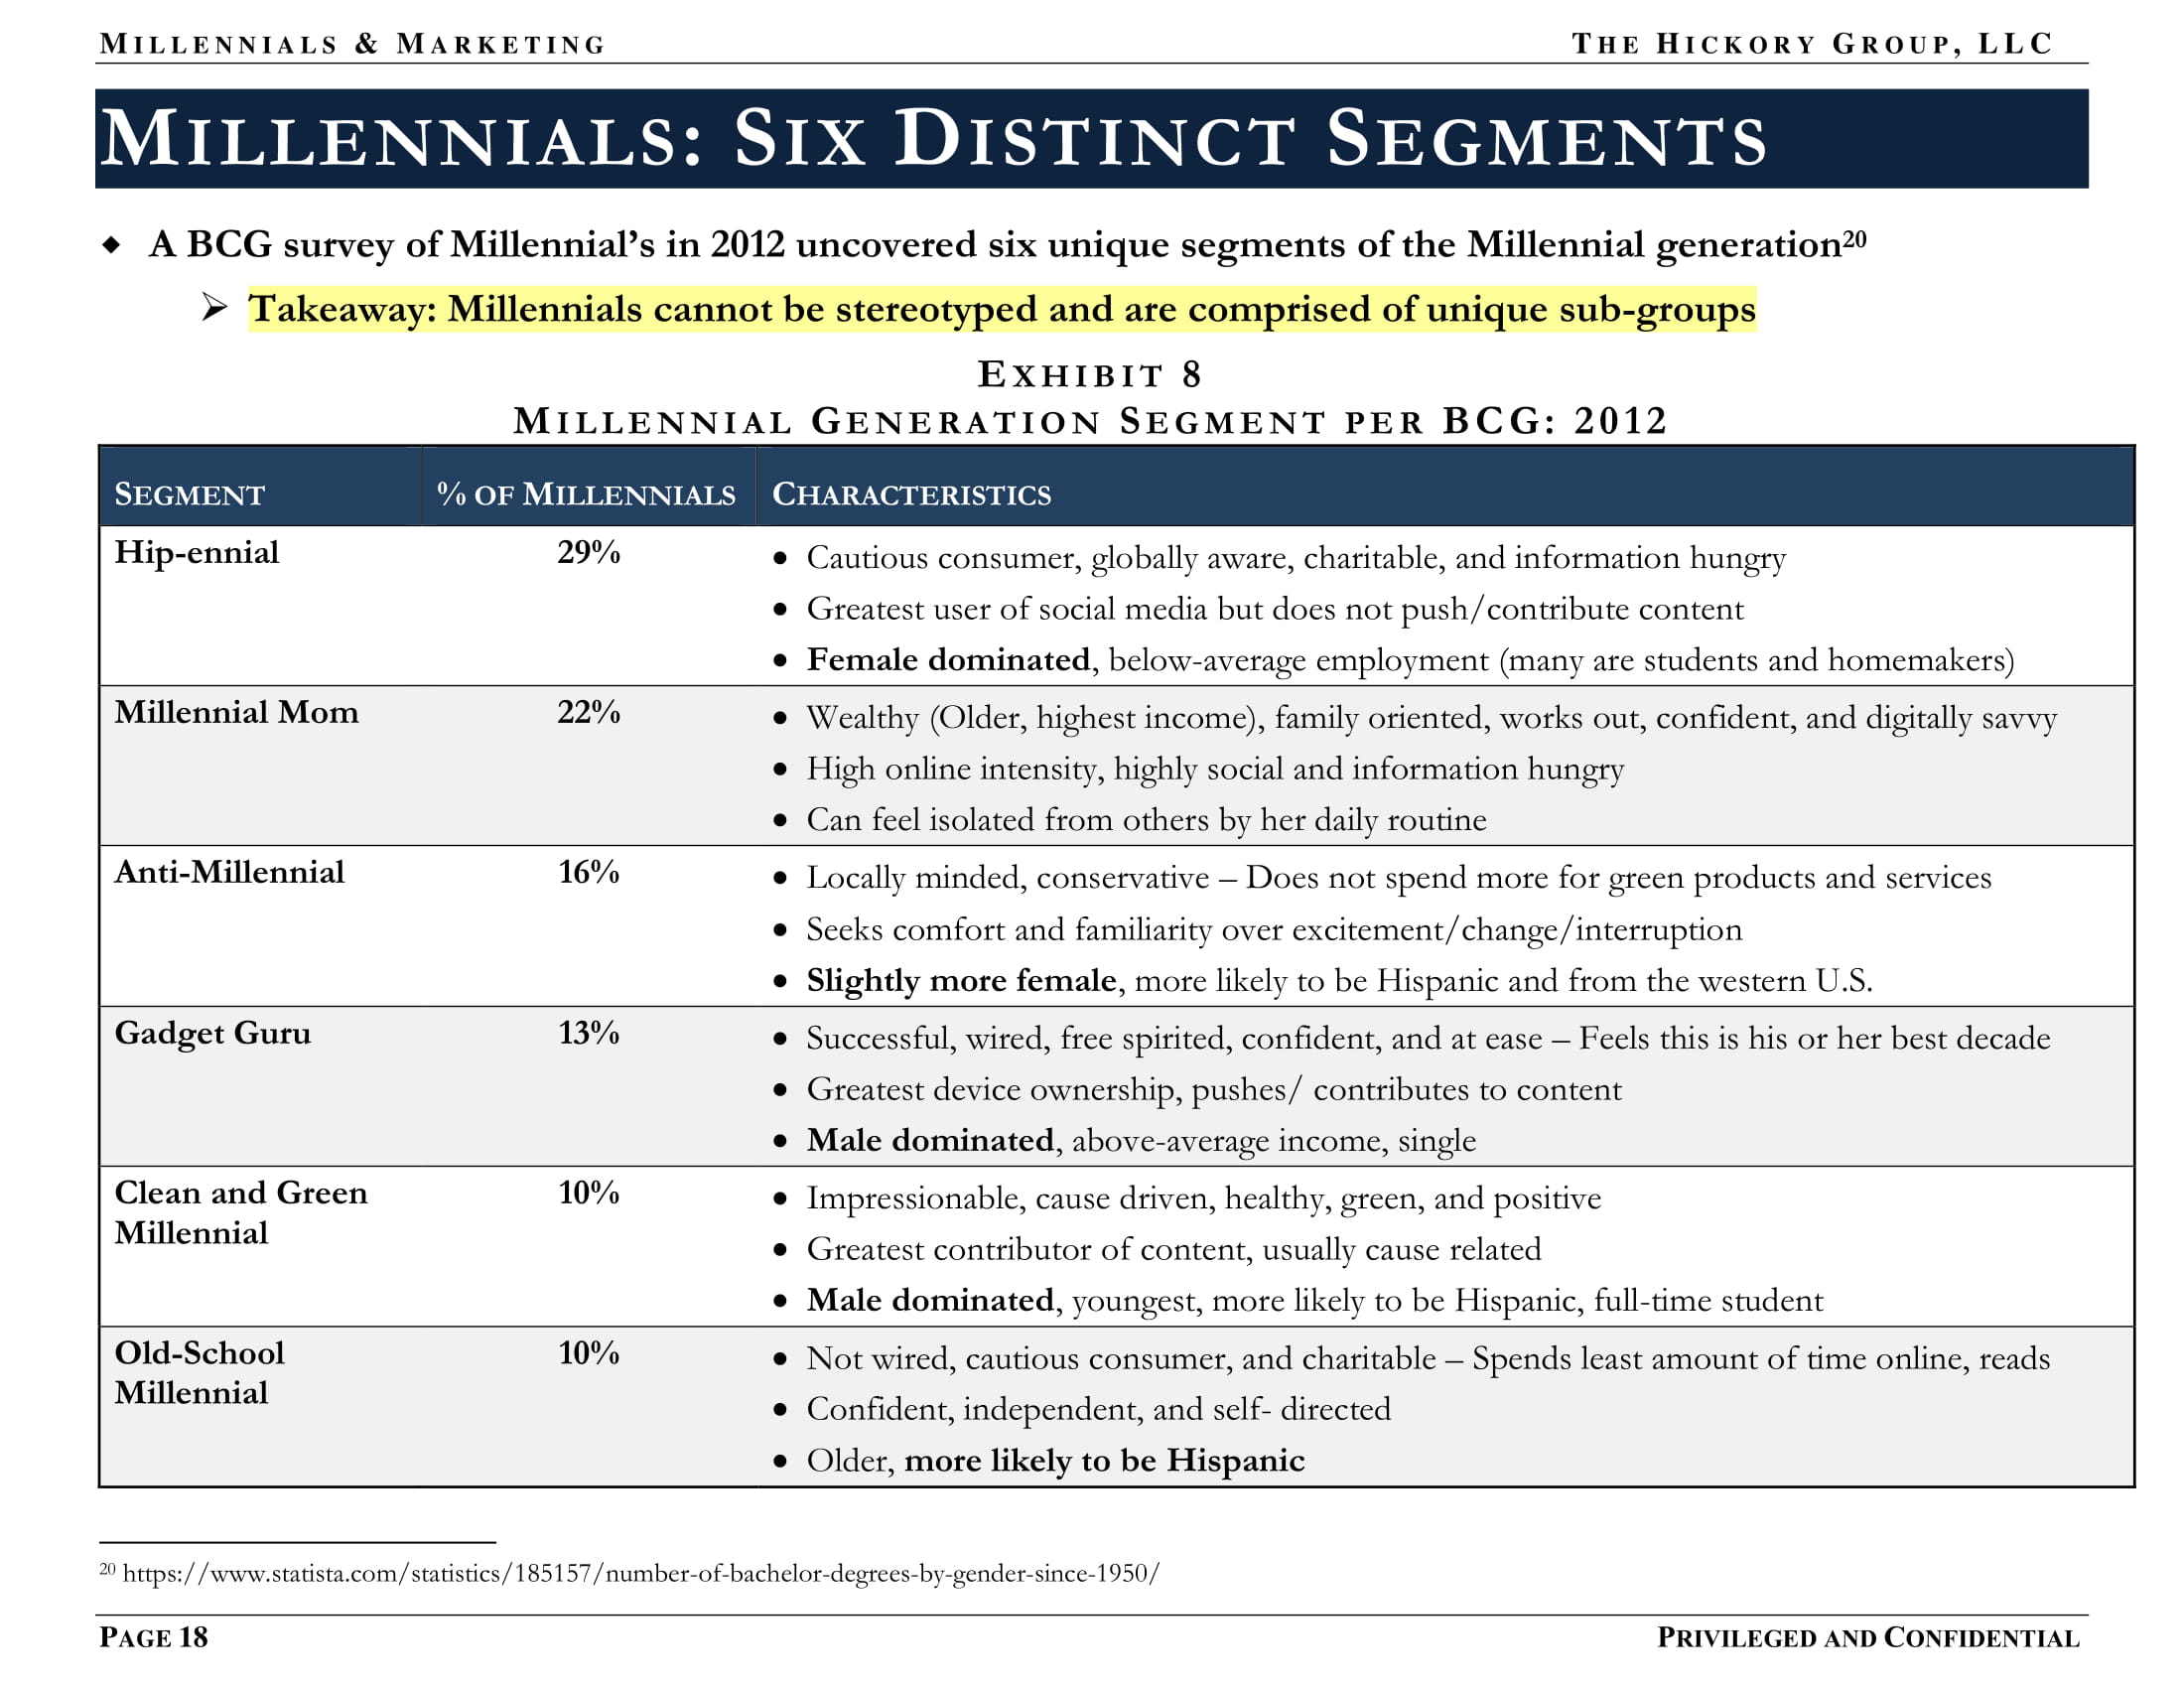 FINAL US Female Millennial Market Summary (December 2017) Privileged and Confidential-18.jpg